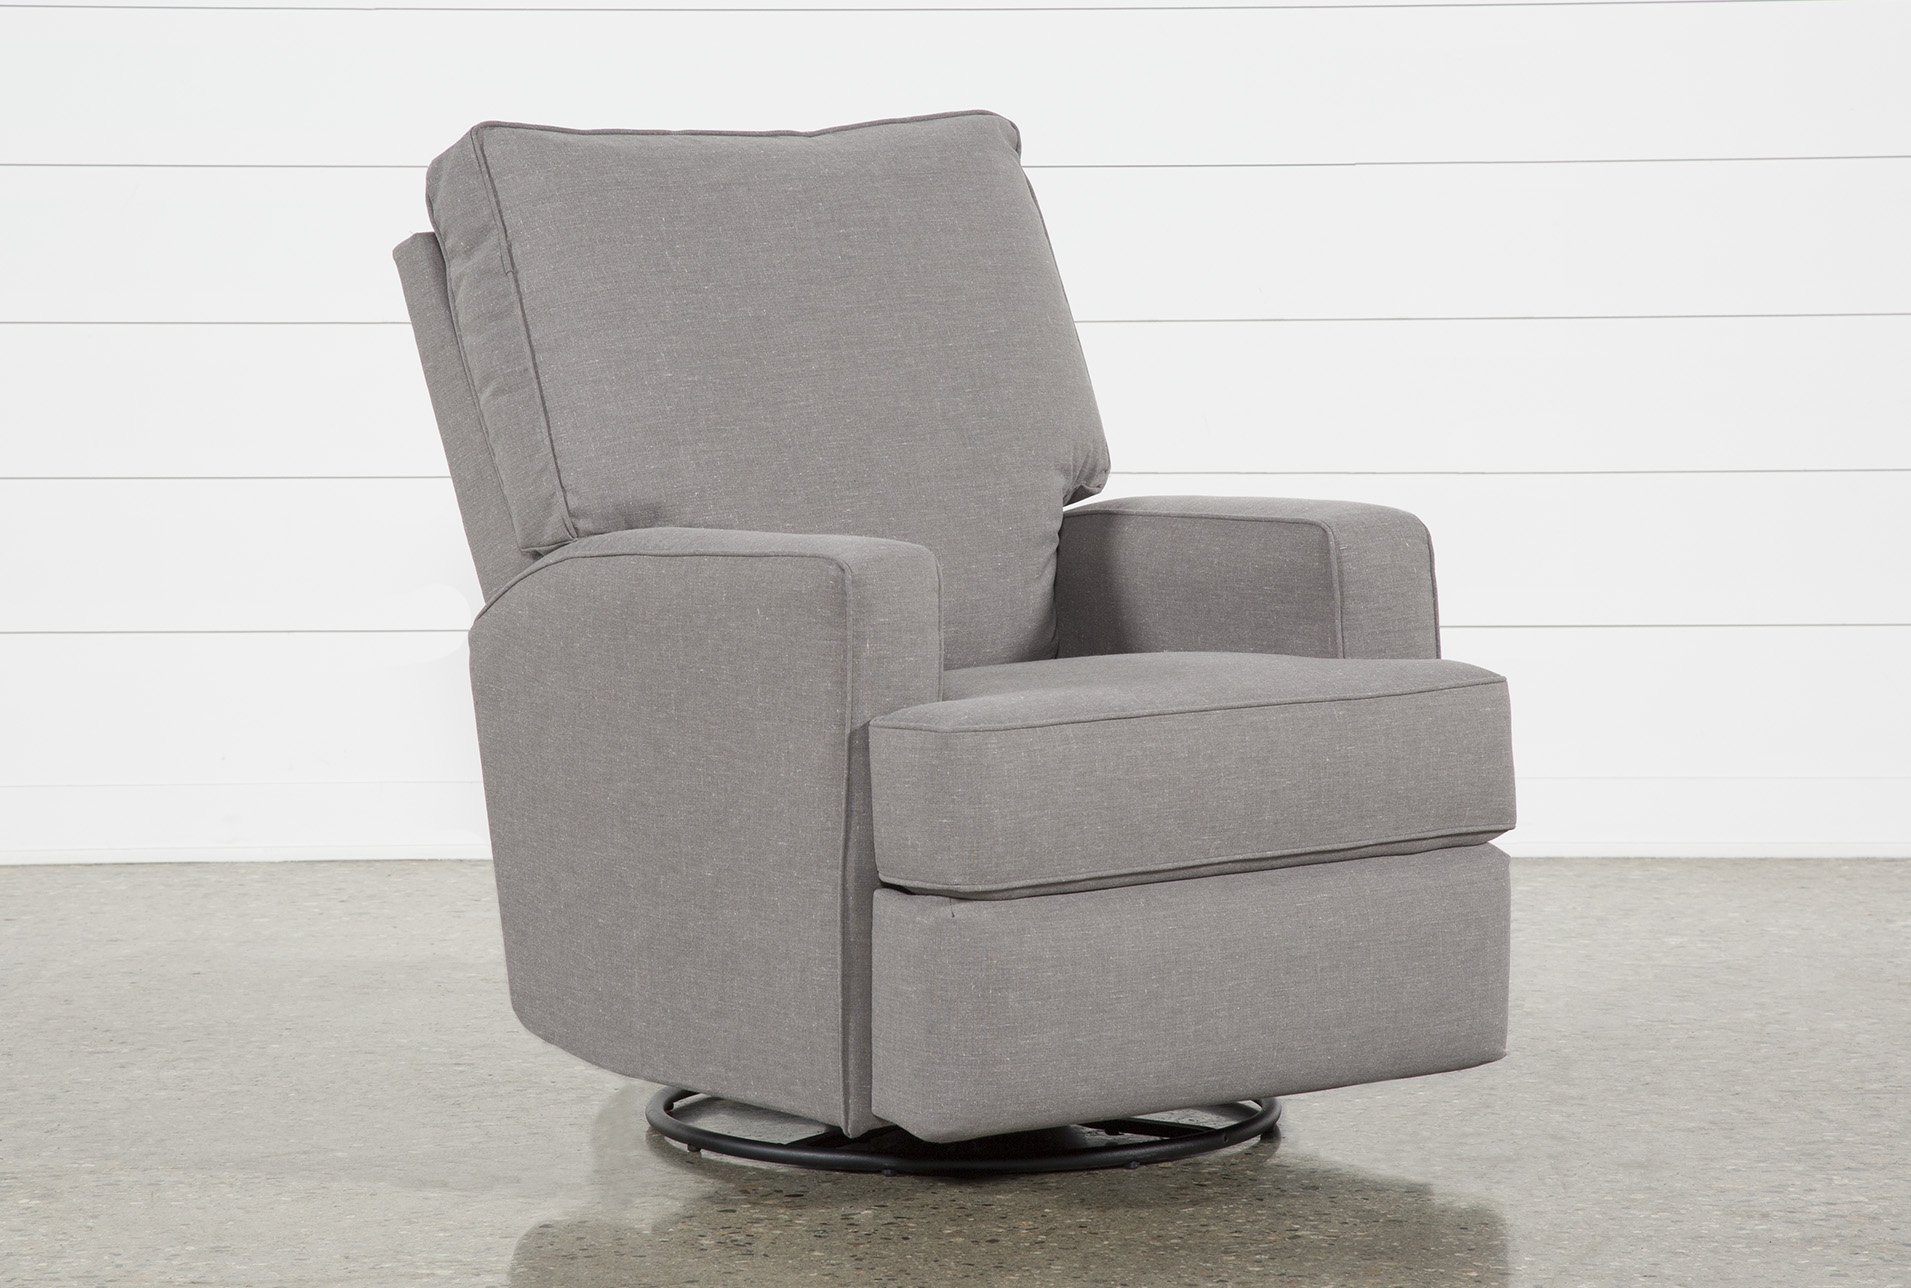 Small Space Recliner Chairs for Your Home & Office | Living Spaces